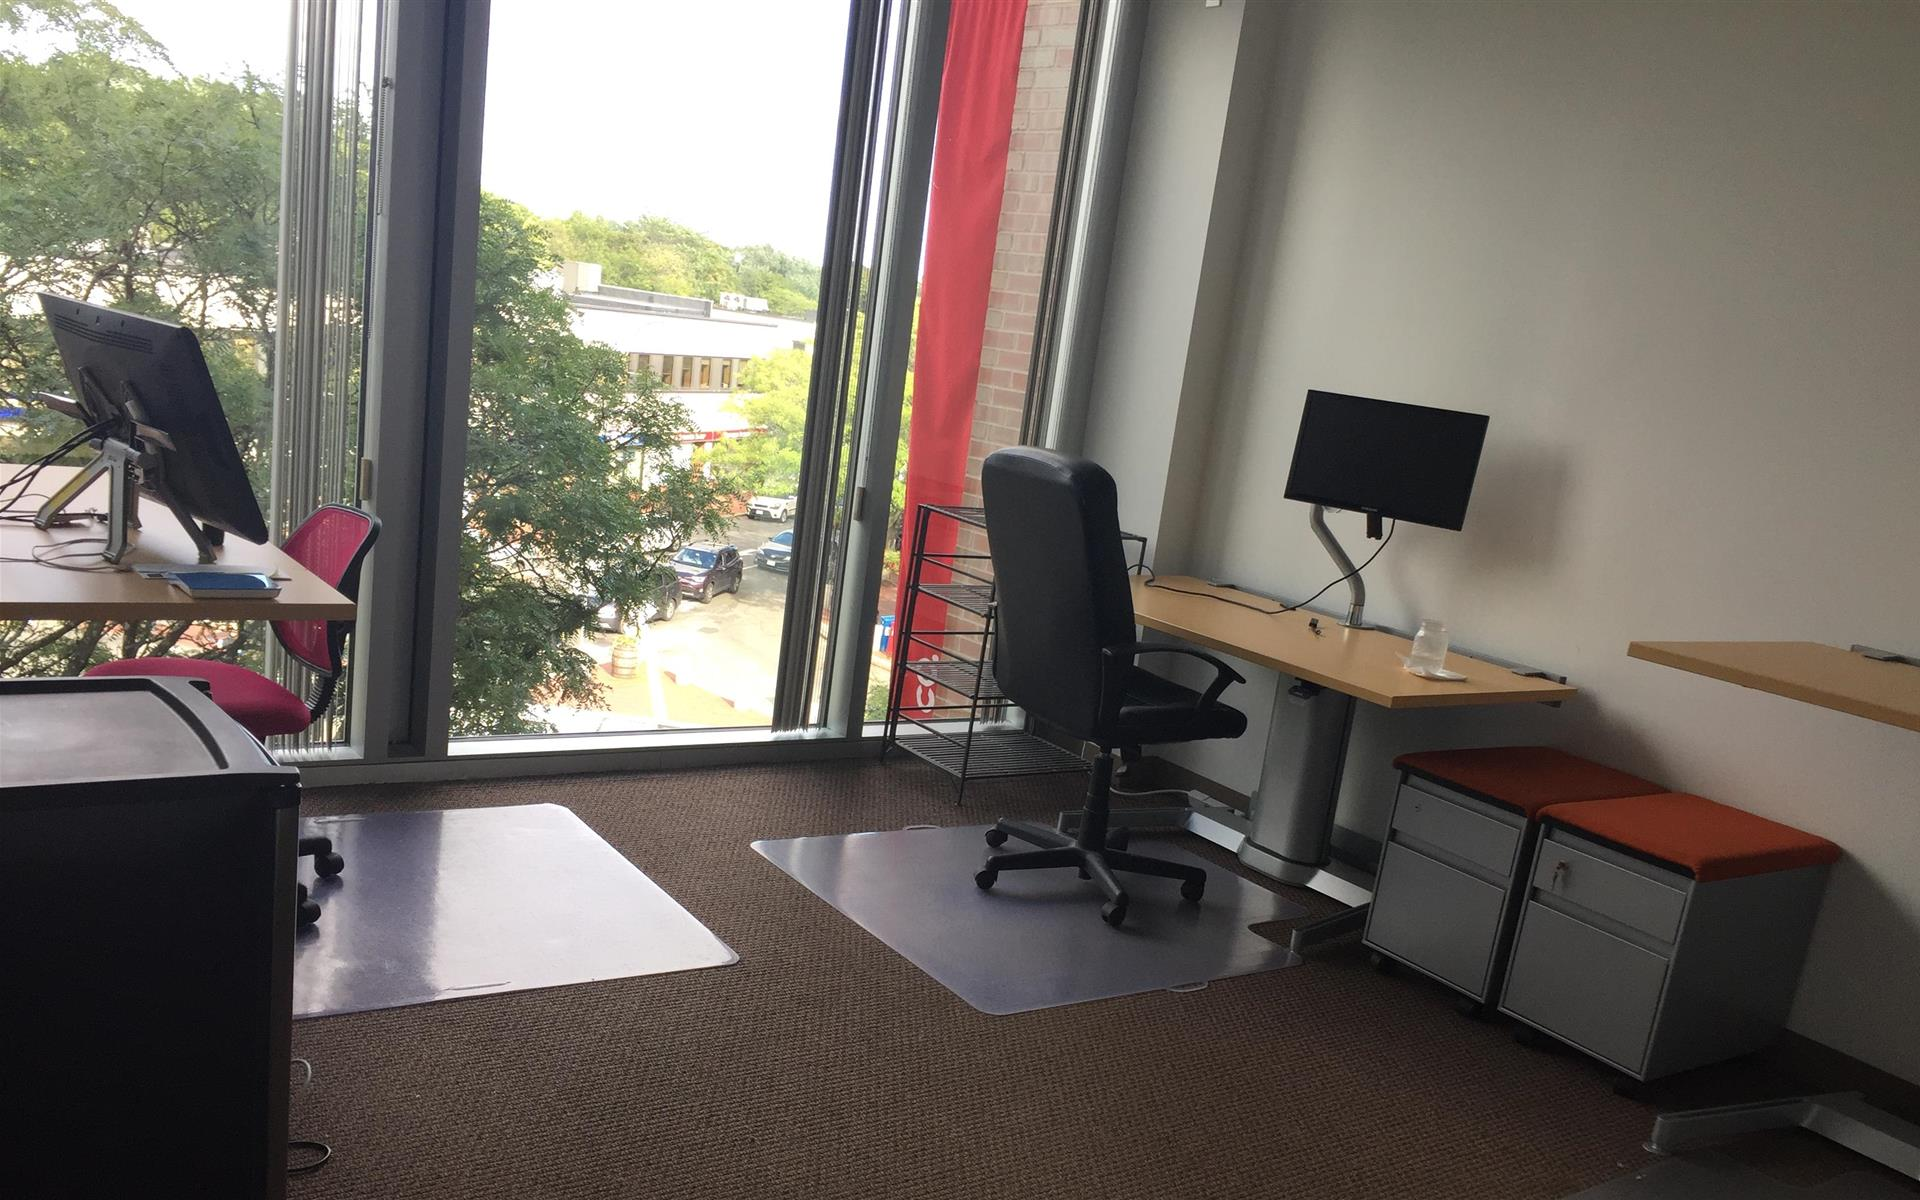 Echo & Co. - Dedicated Desk with Monitor